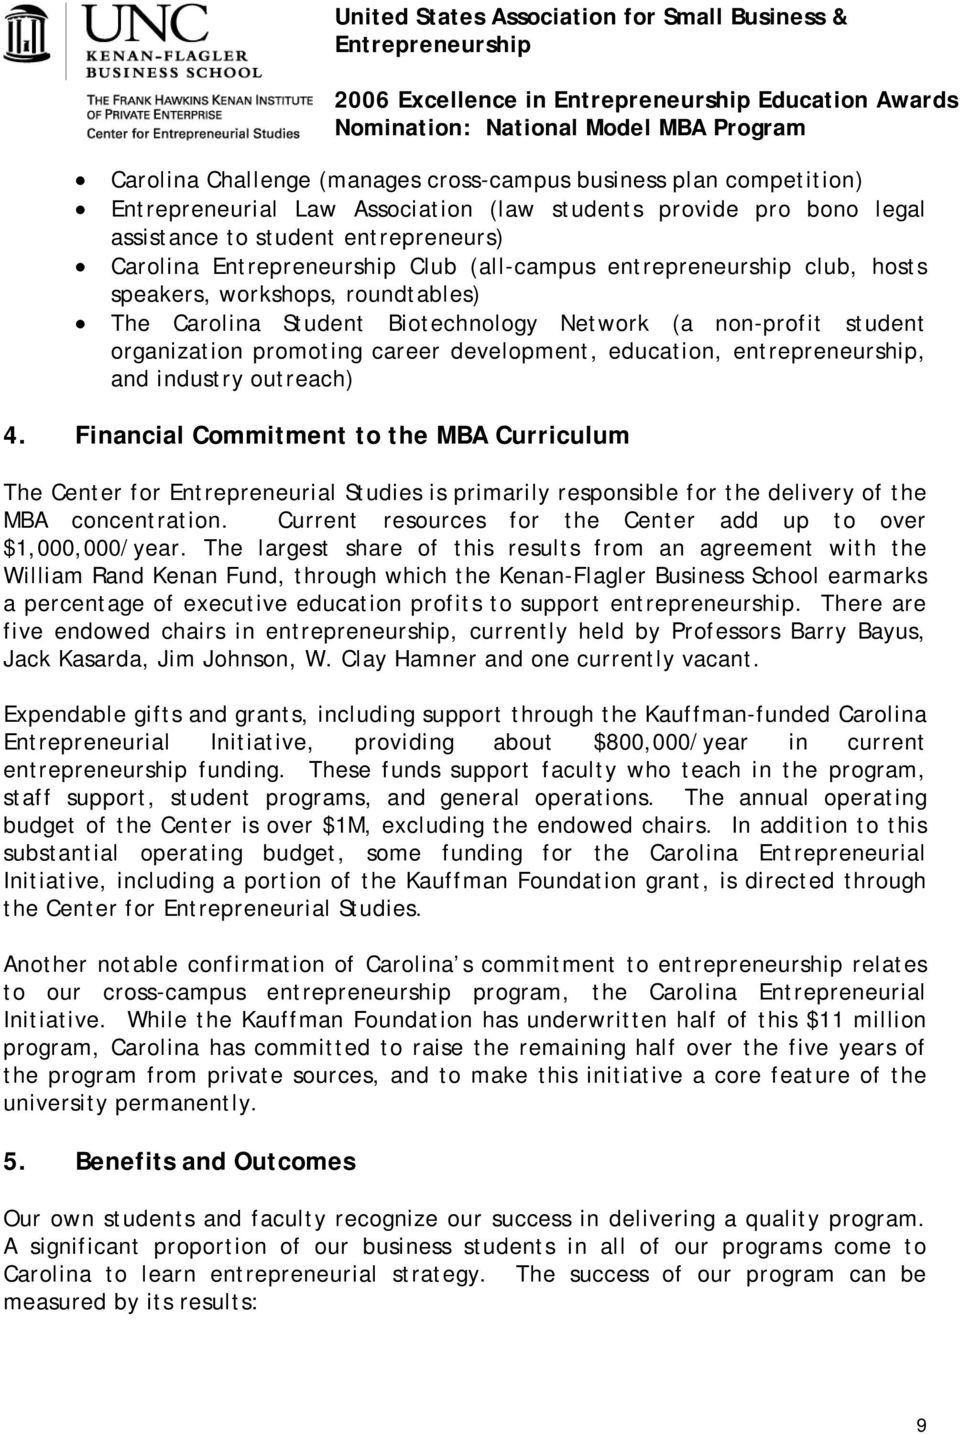 and industry outreach) 4. Financial Commitment to the MBA Curriculum The Center for Entrepreneurial Studies is primarily responsible for the delivery of the MBA concentration.